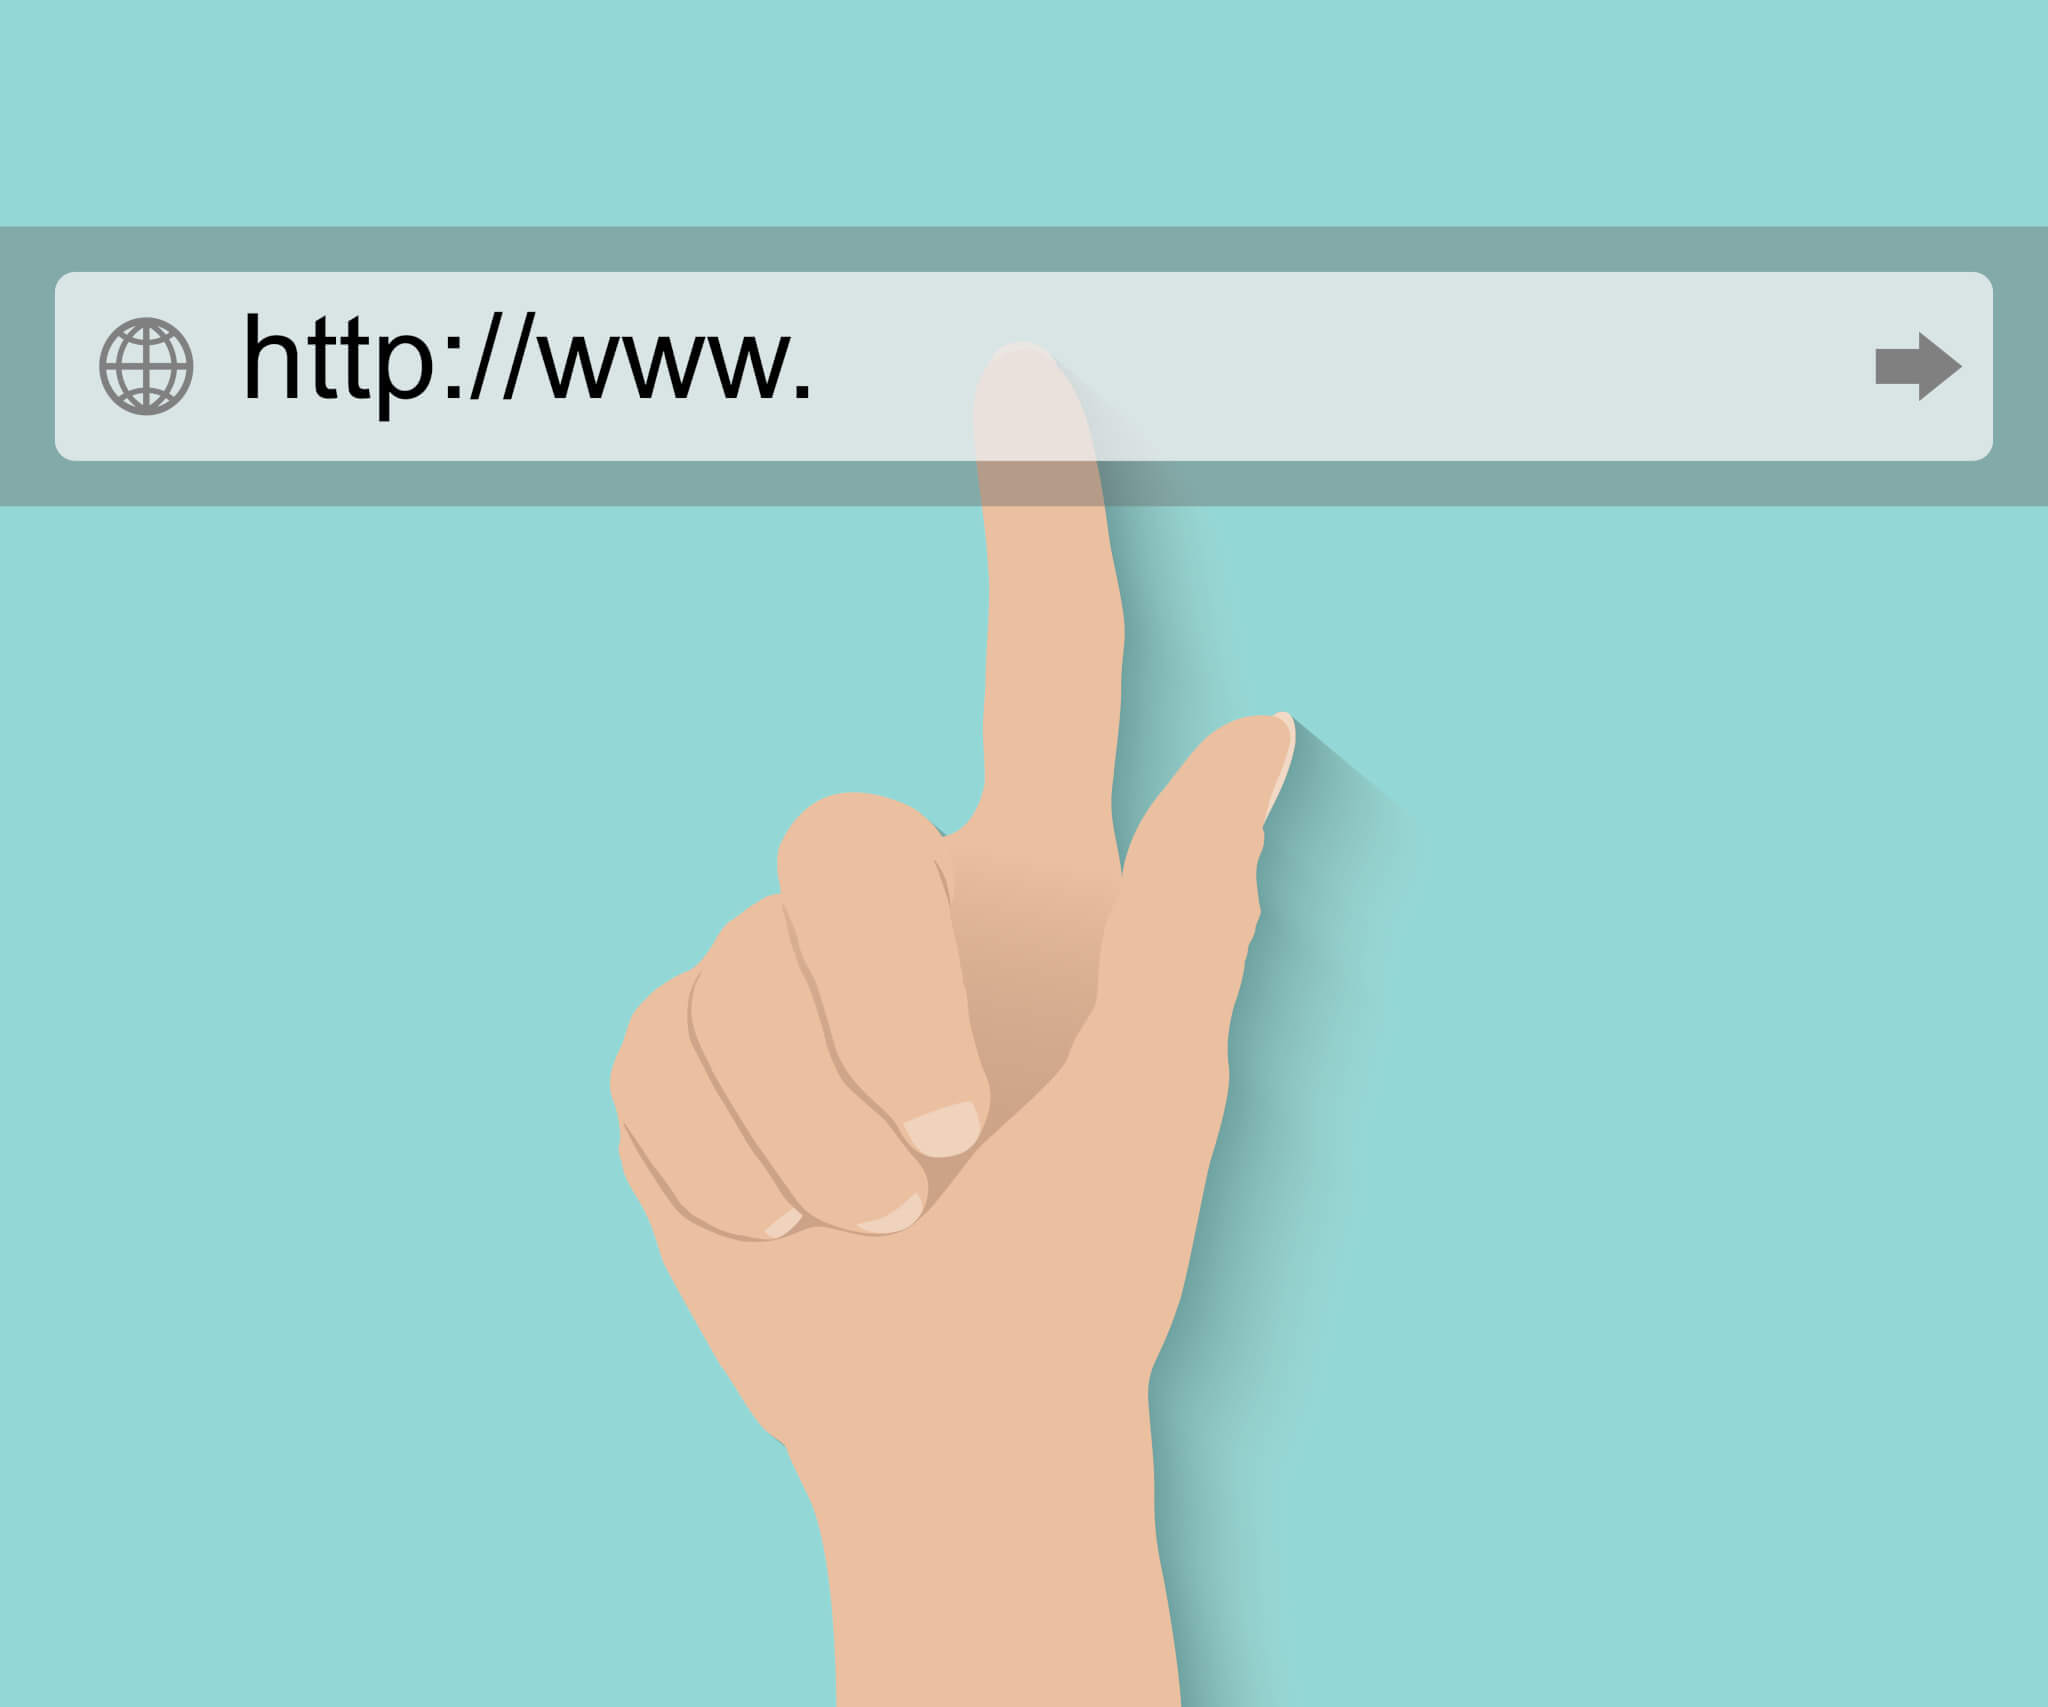 A cartoon hand pointing to the URL bar on a website